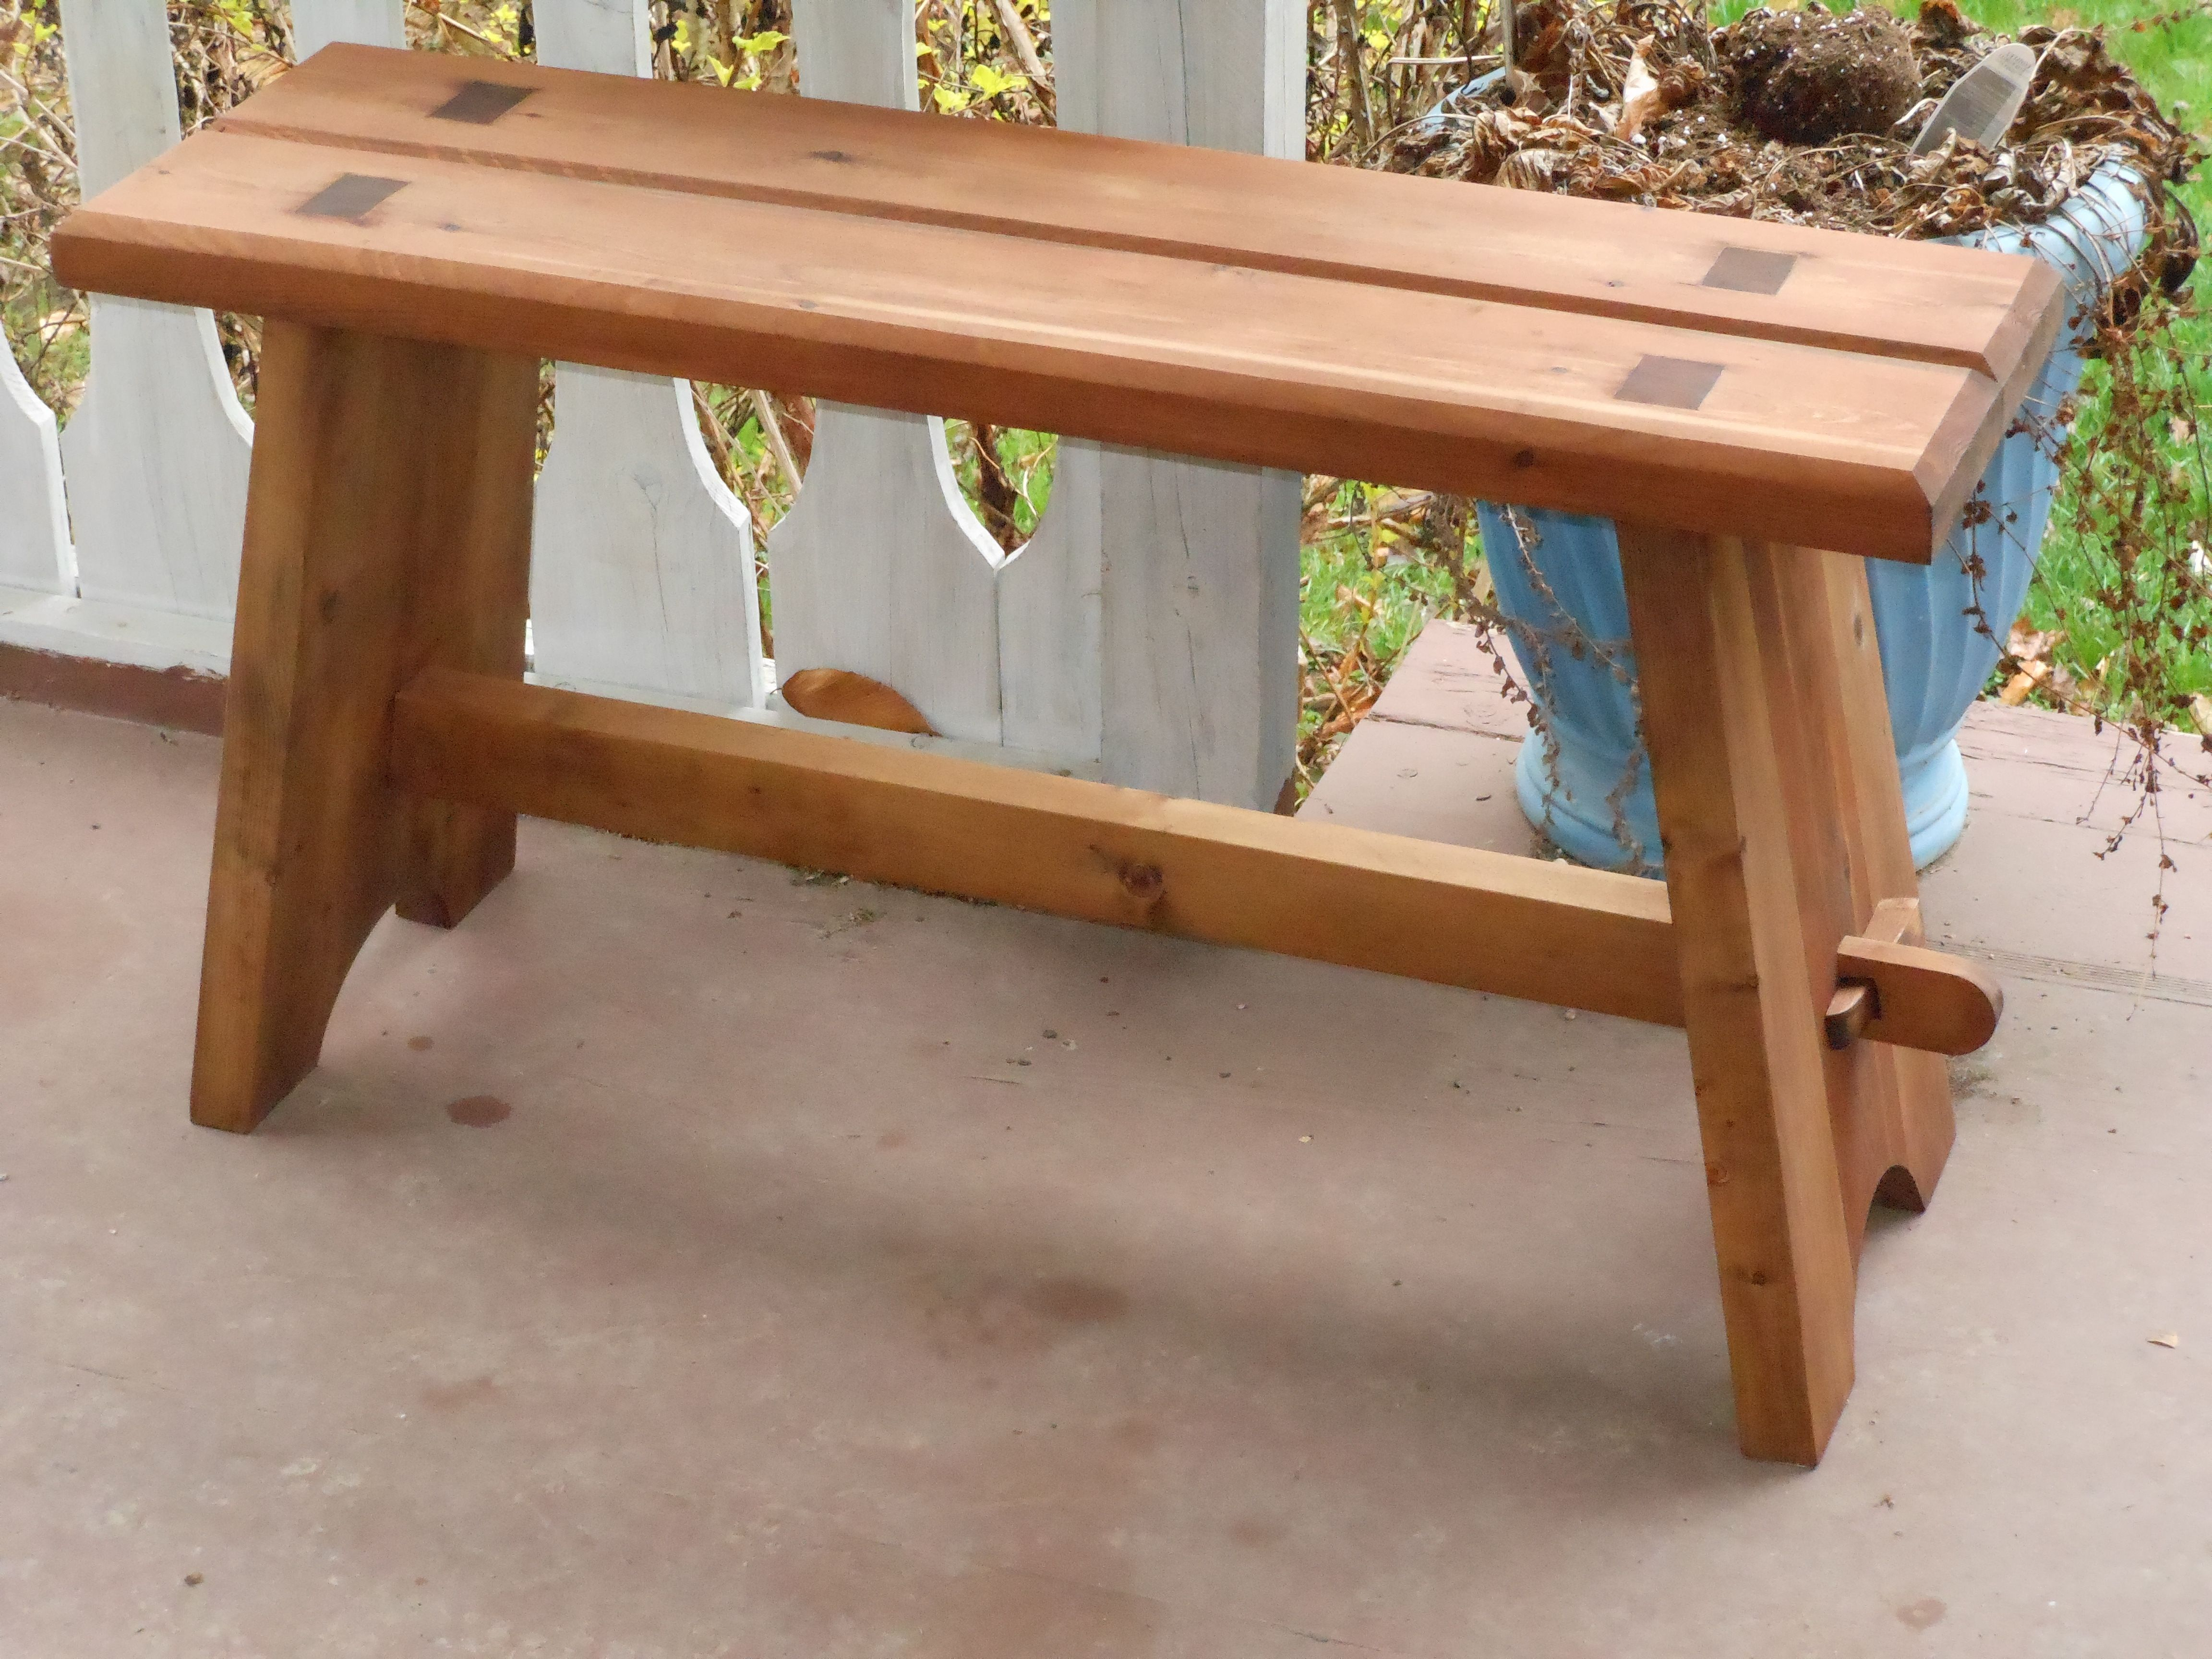 How to Build a Strong Mortise and Tenon Bench in 2018 | My Favorite ...